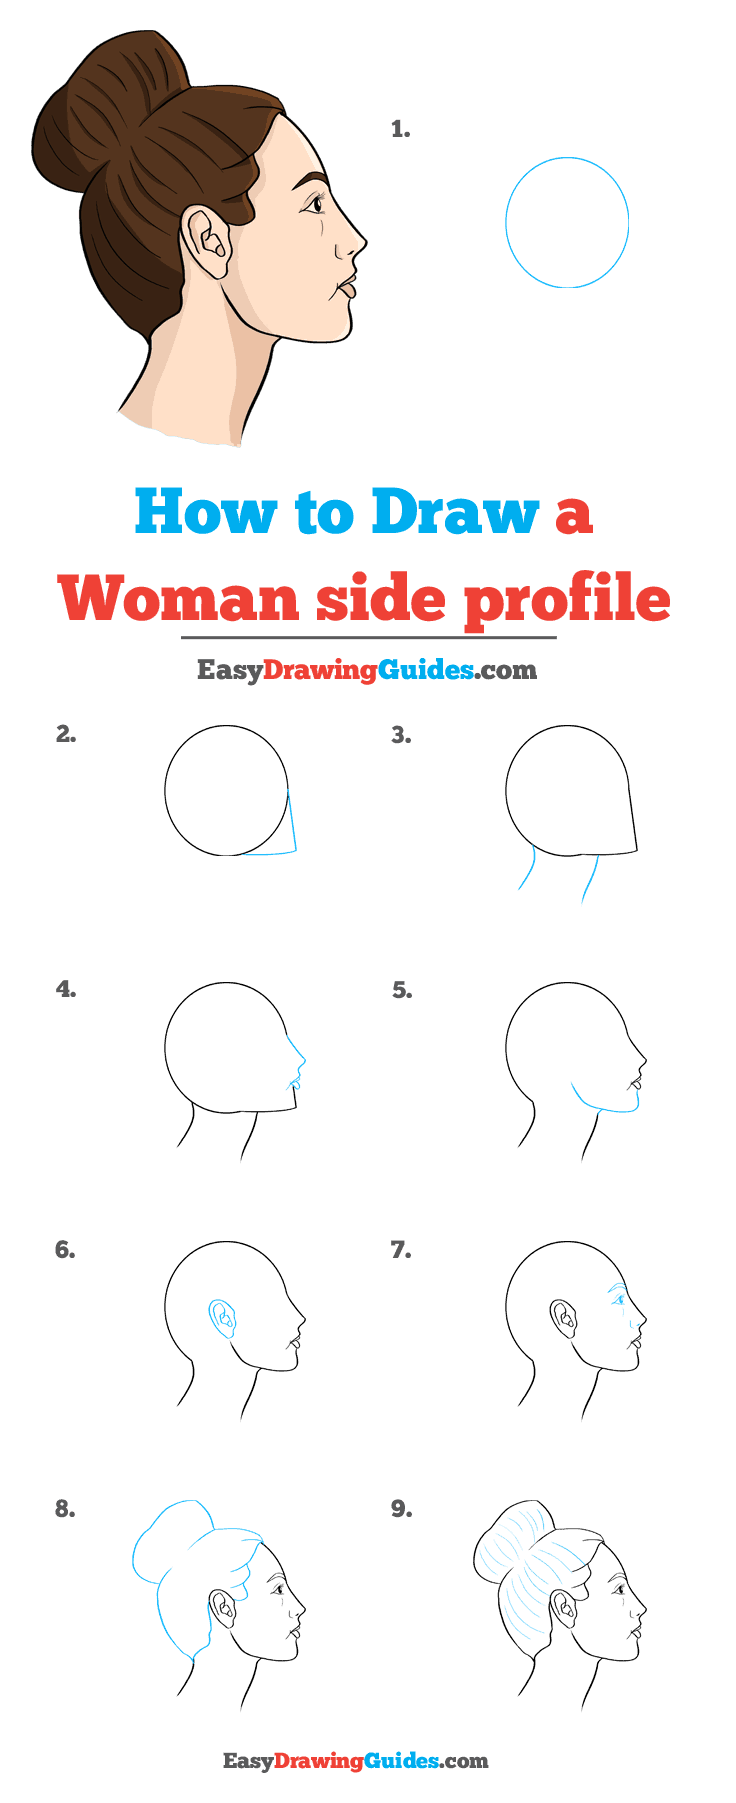 How to Draw a Woman Side Profile Step by Step Tutorial Image